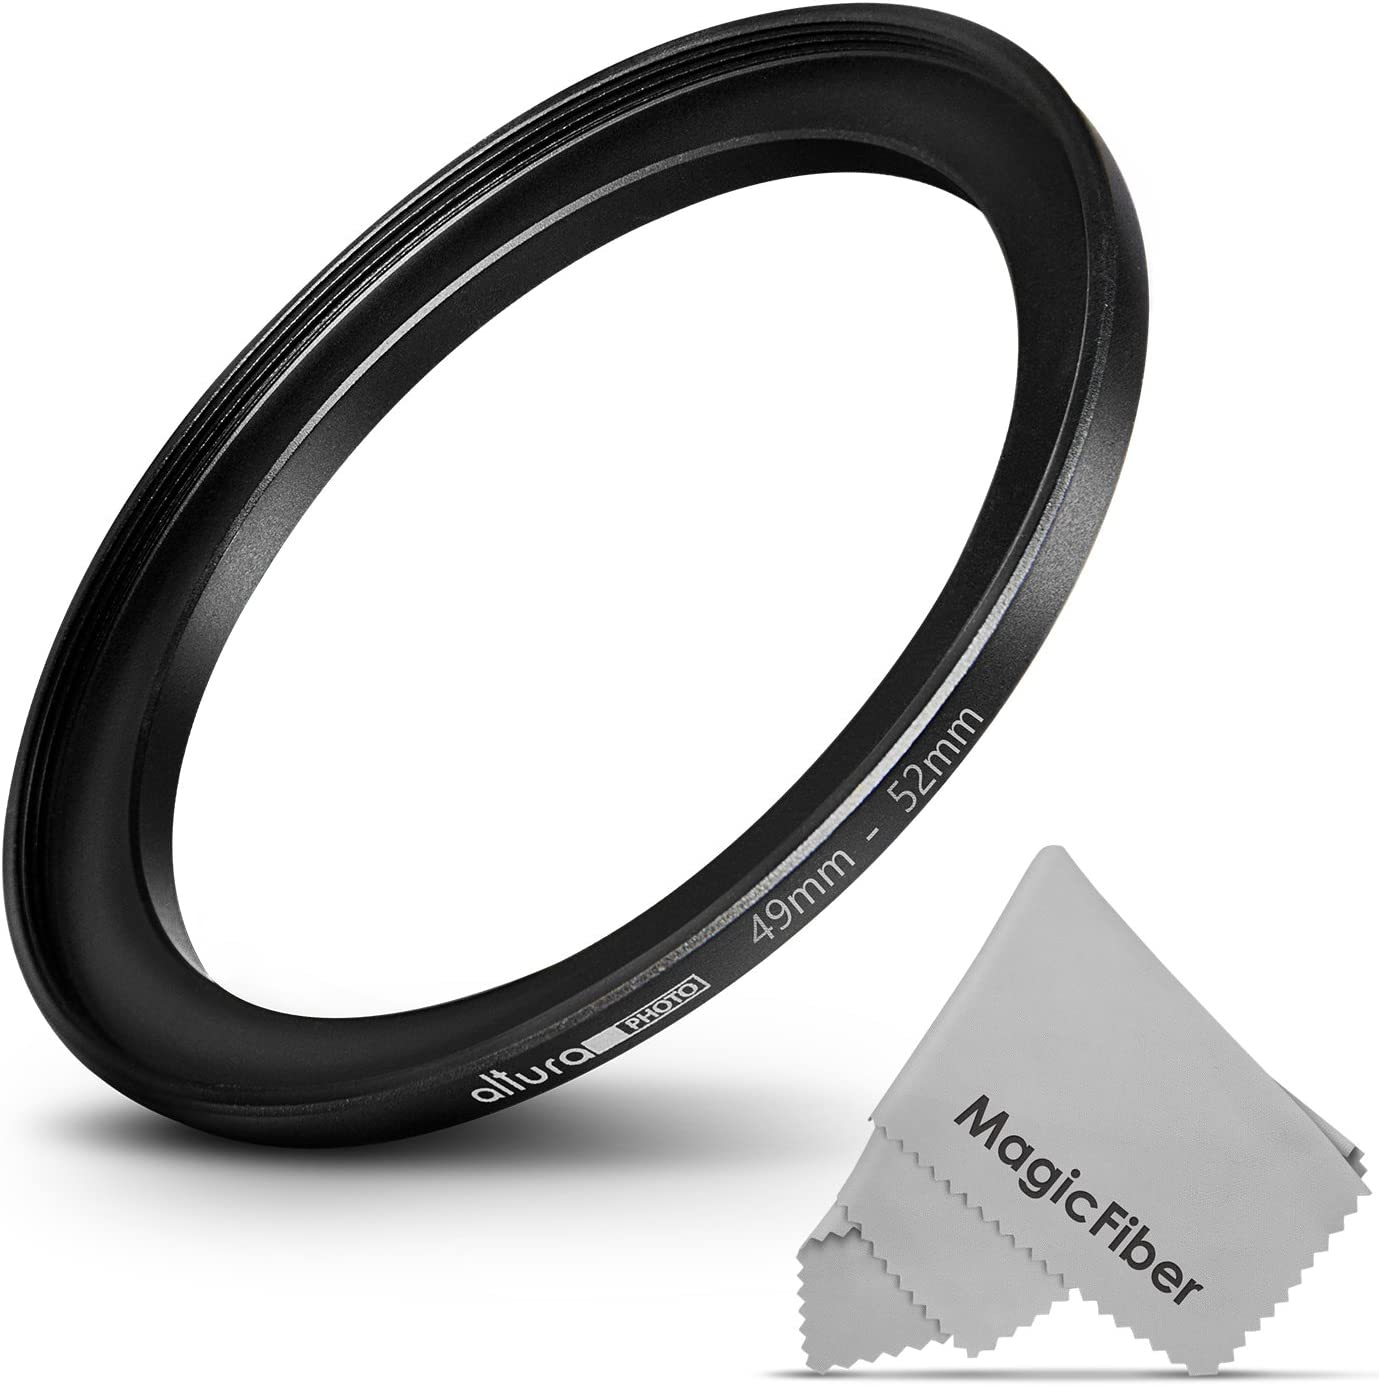 Altura Photo 49-52MM Step-Up Ring Adapter Daily bargain sale 2021 autumn and winter new to 52MM 49MM Fil Lens